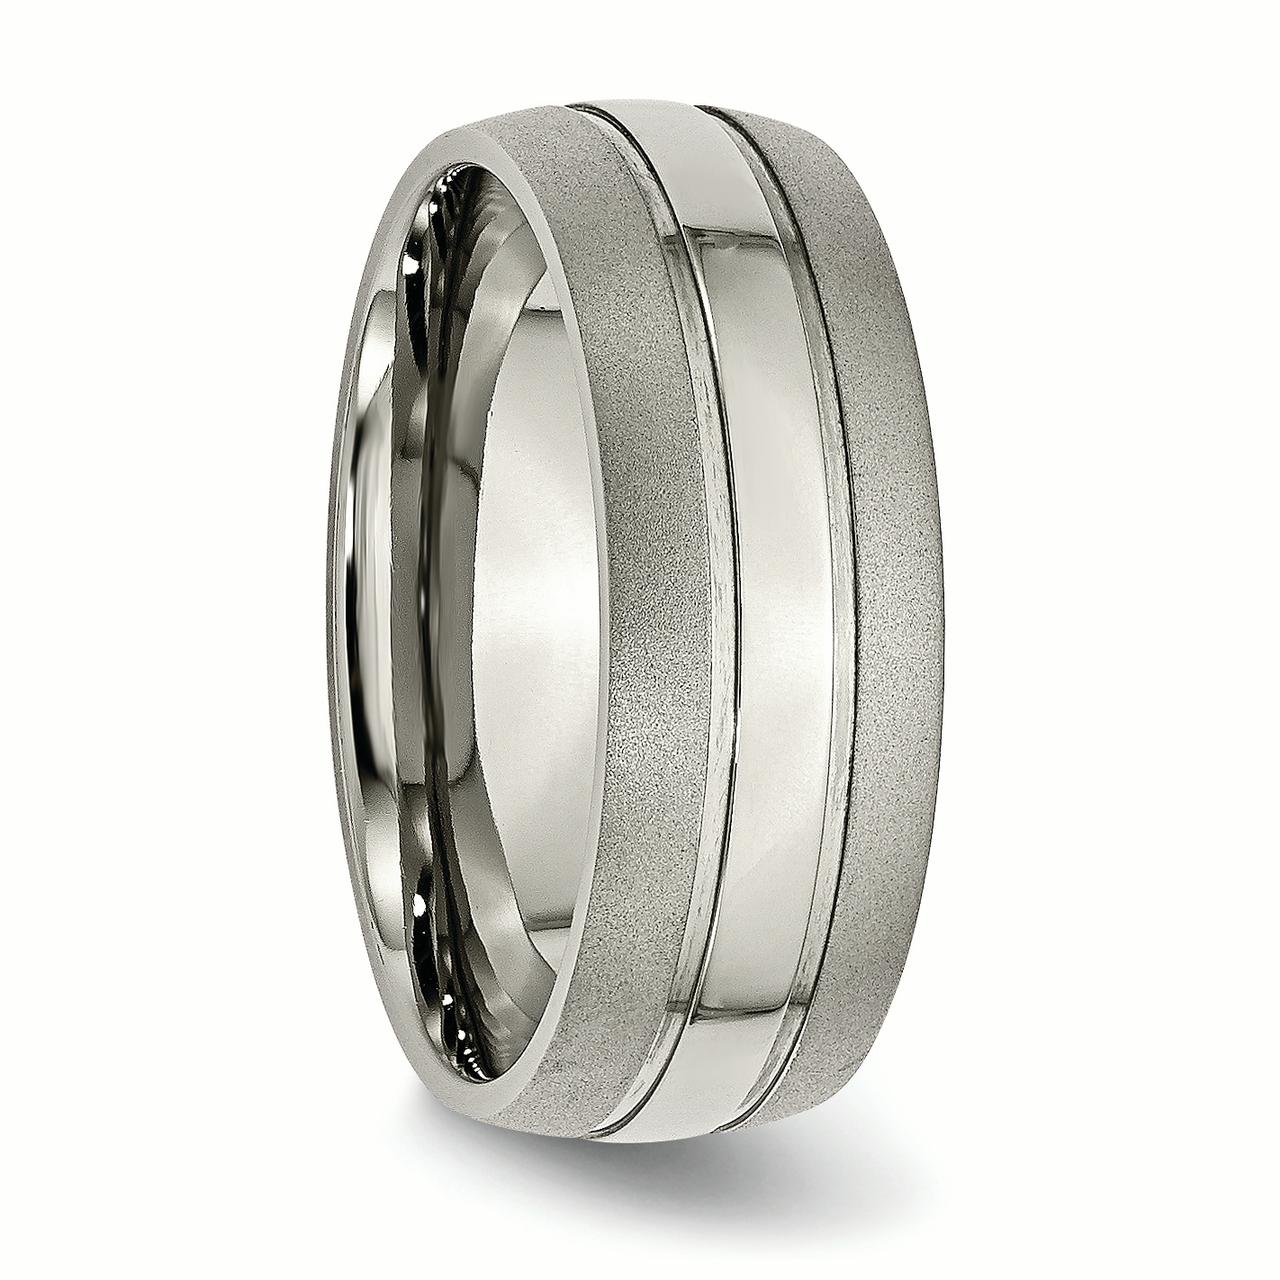 Bridal Titanium Grooved 8mm Brushed and Polished Band